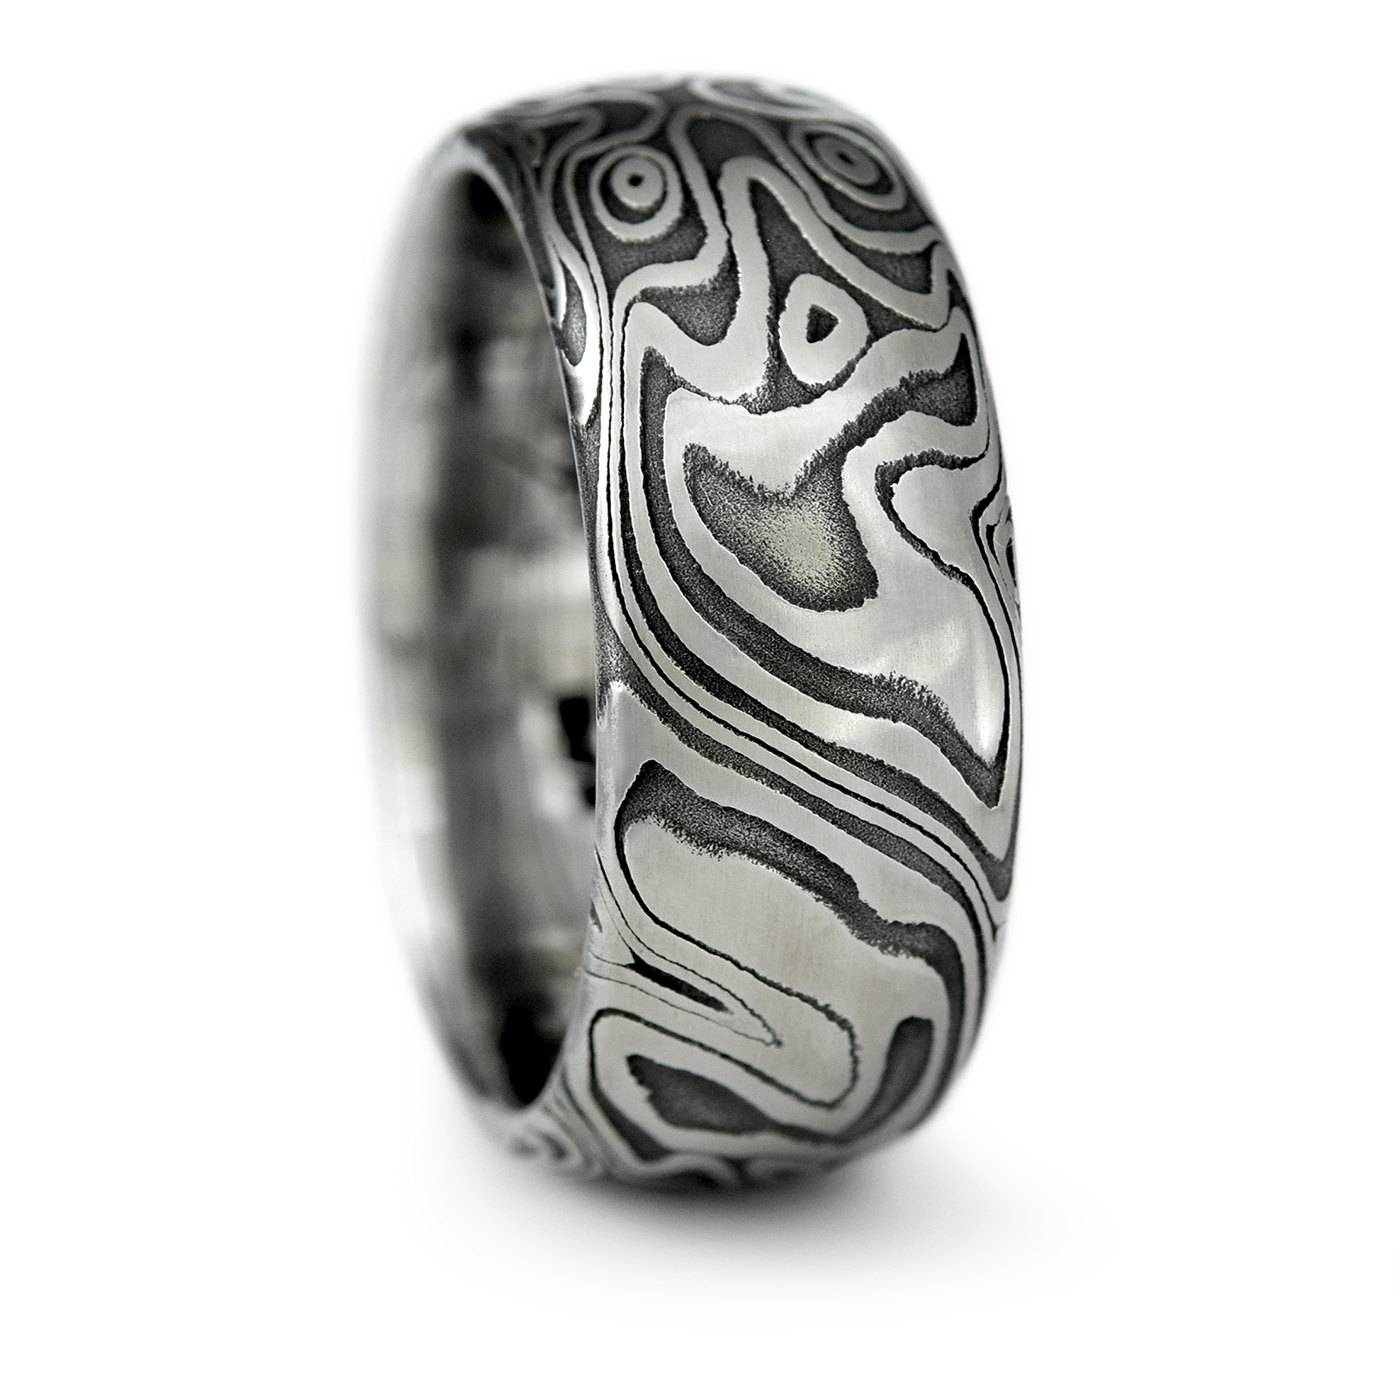 Damascus Steel Domed Wedding Band With Four Pointed Swirling Intended For Damascus Mens Wedding Bands (View 1 of 15)